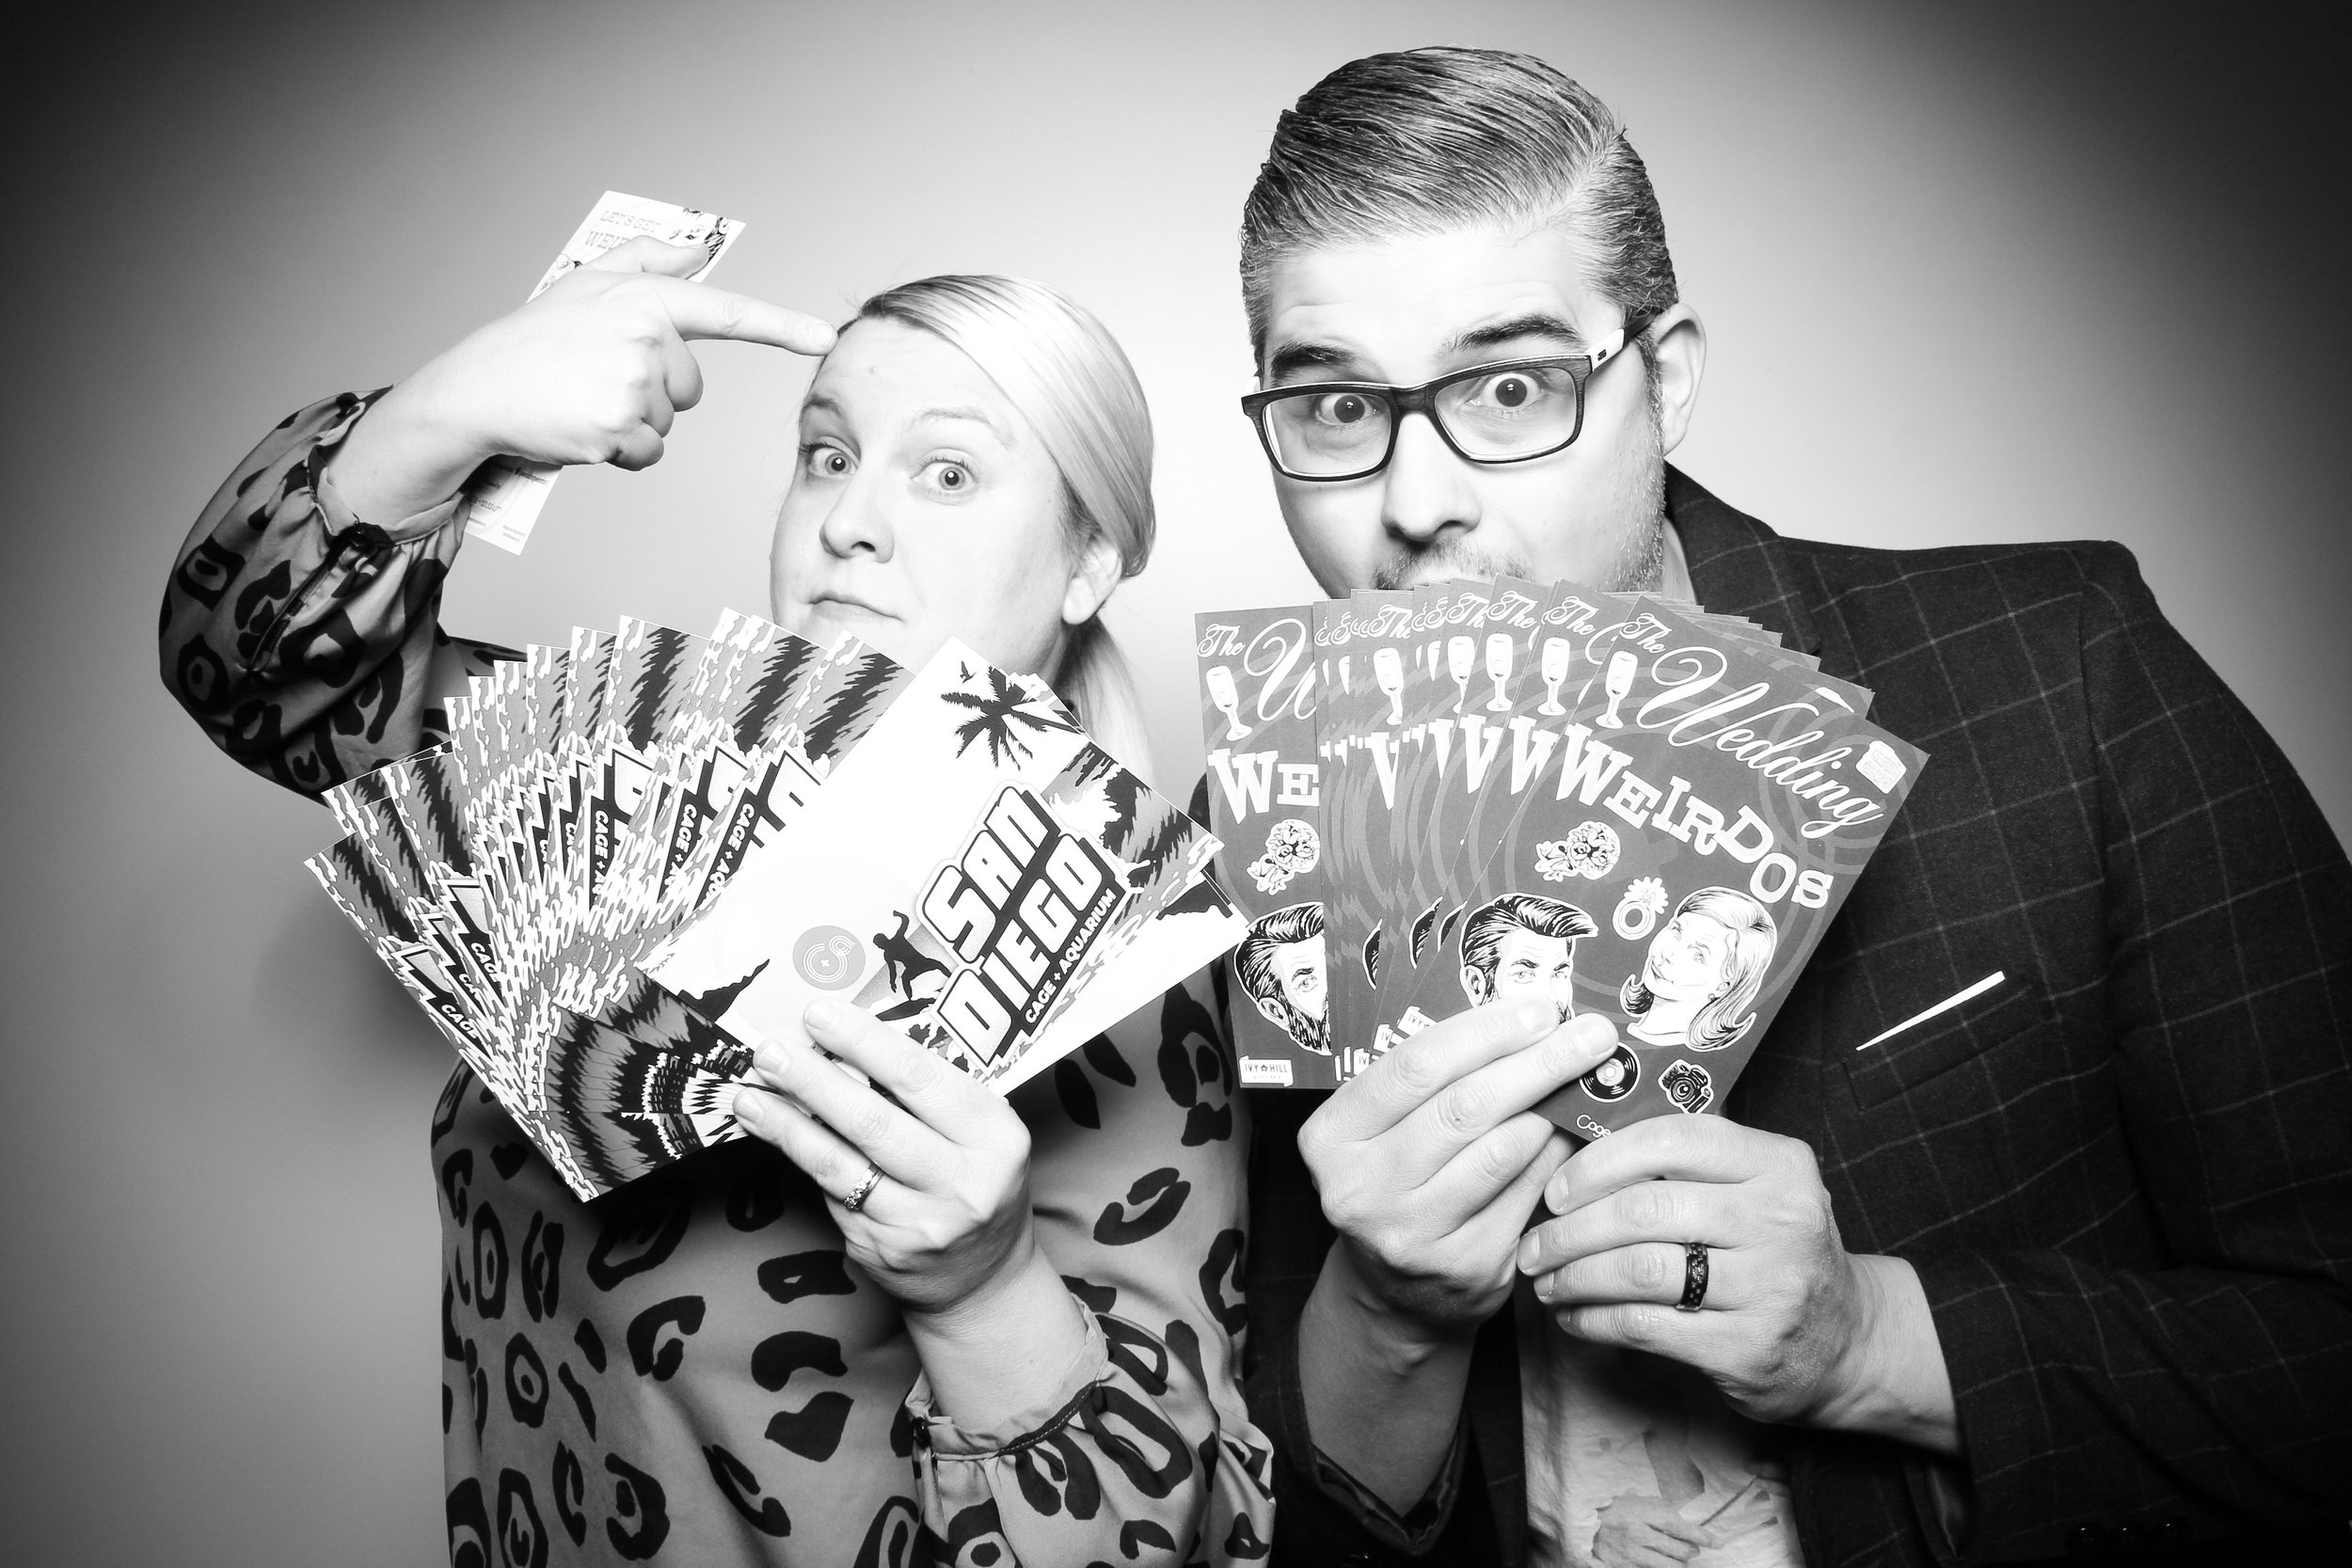 Venue_West_J&L_Catering_Chicago_Photo_Booth_Vitnage__21.jpg